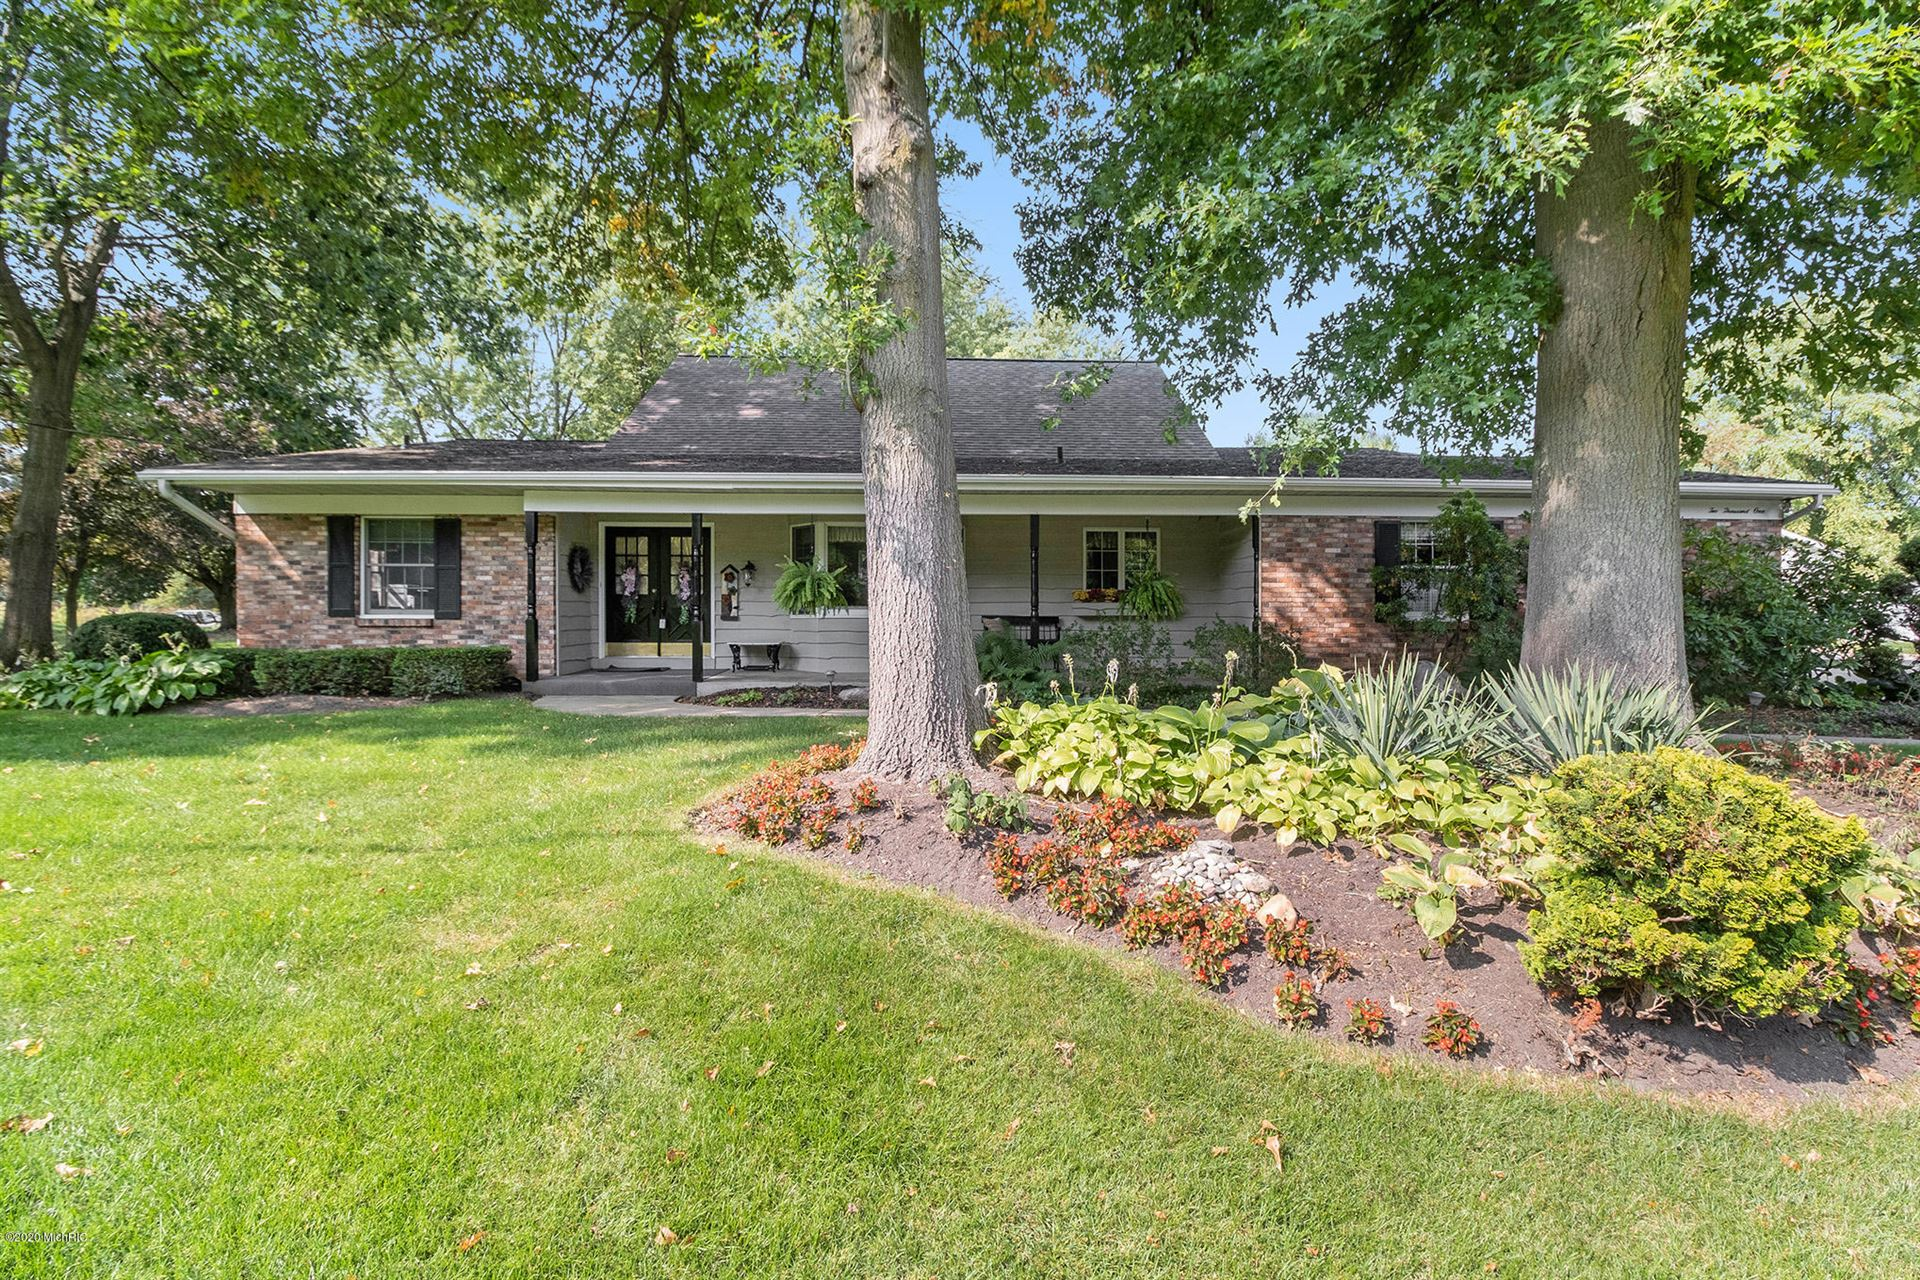 2001 N 9th Street, Kalamazoo, MI 49009 - MLS#: 20040280